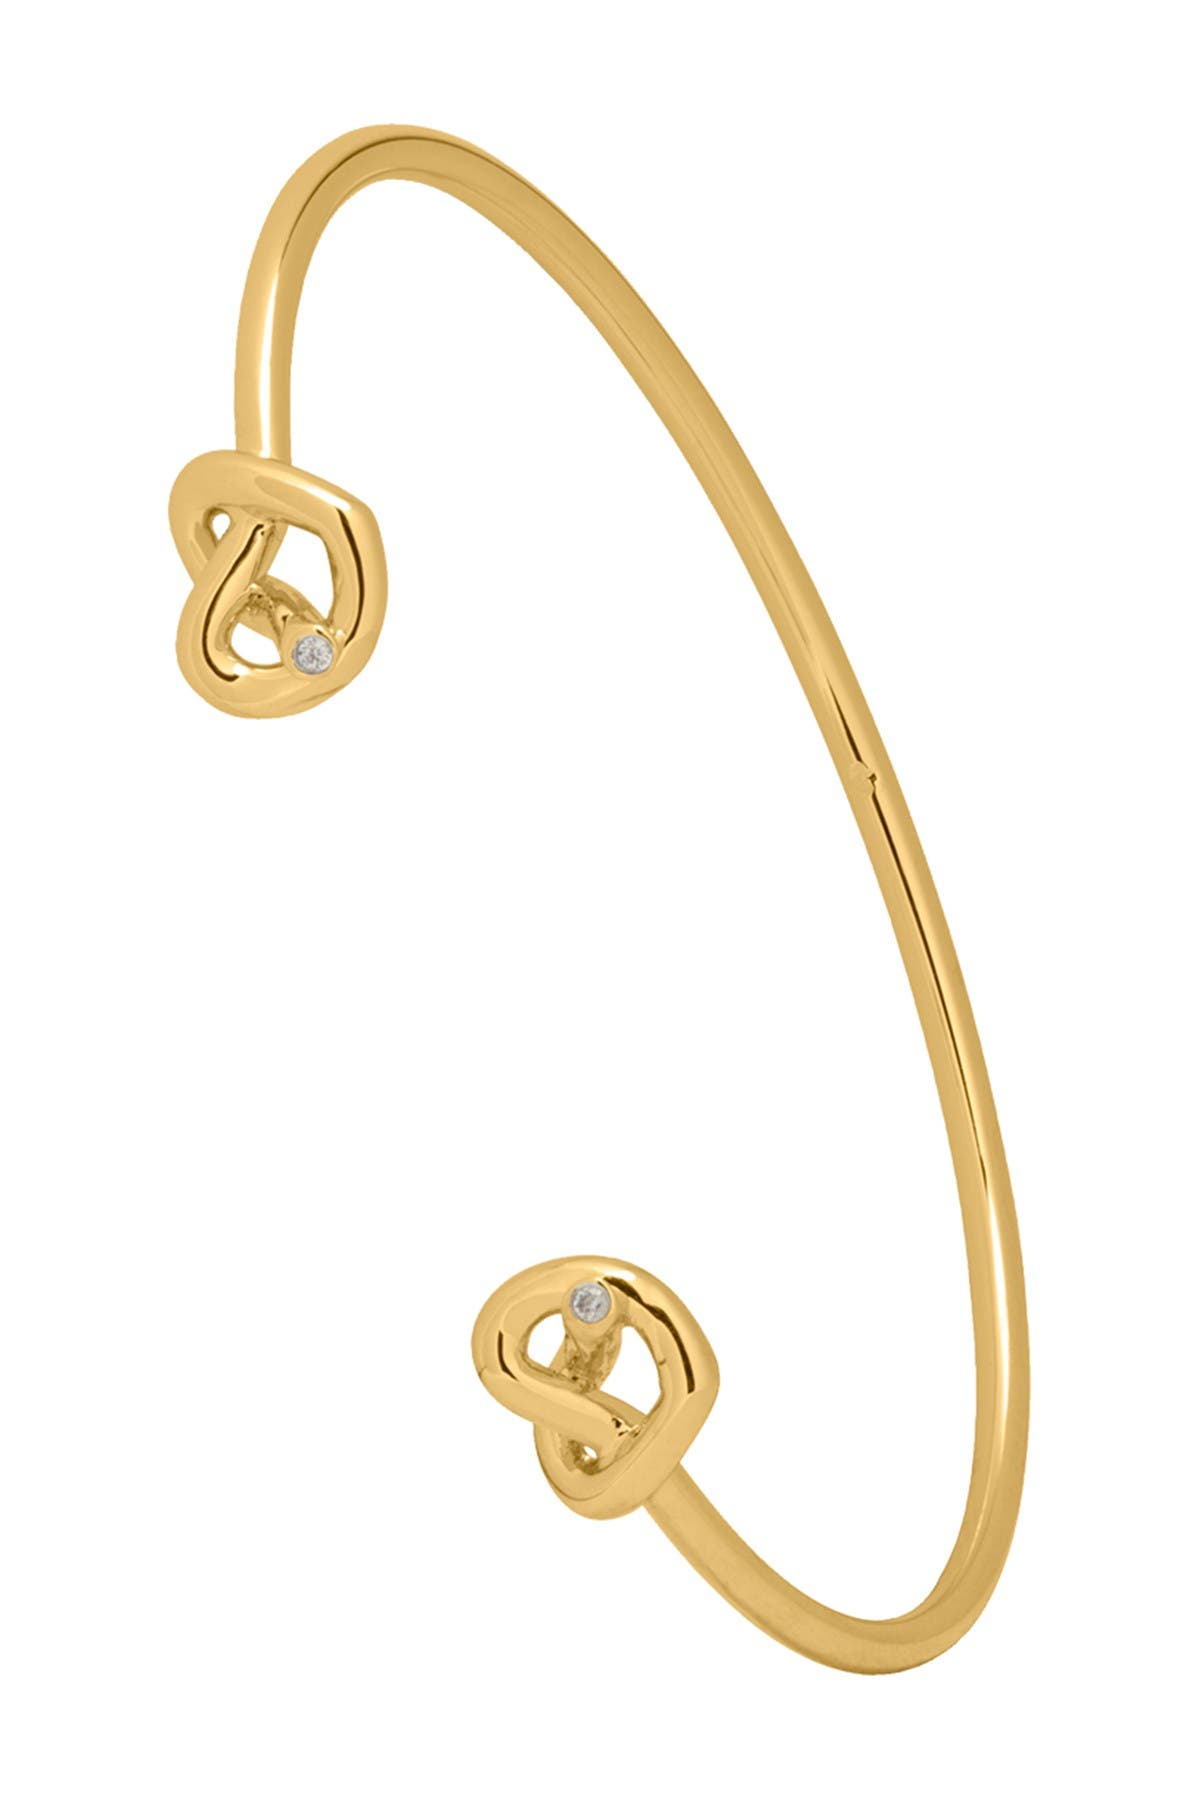 Image of kate spade new york loves me knot CZ double knot cuff